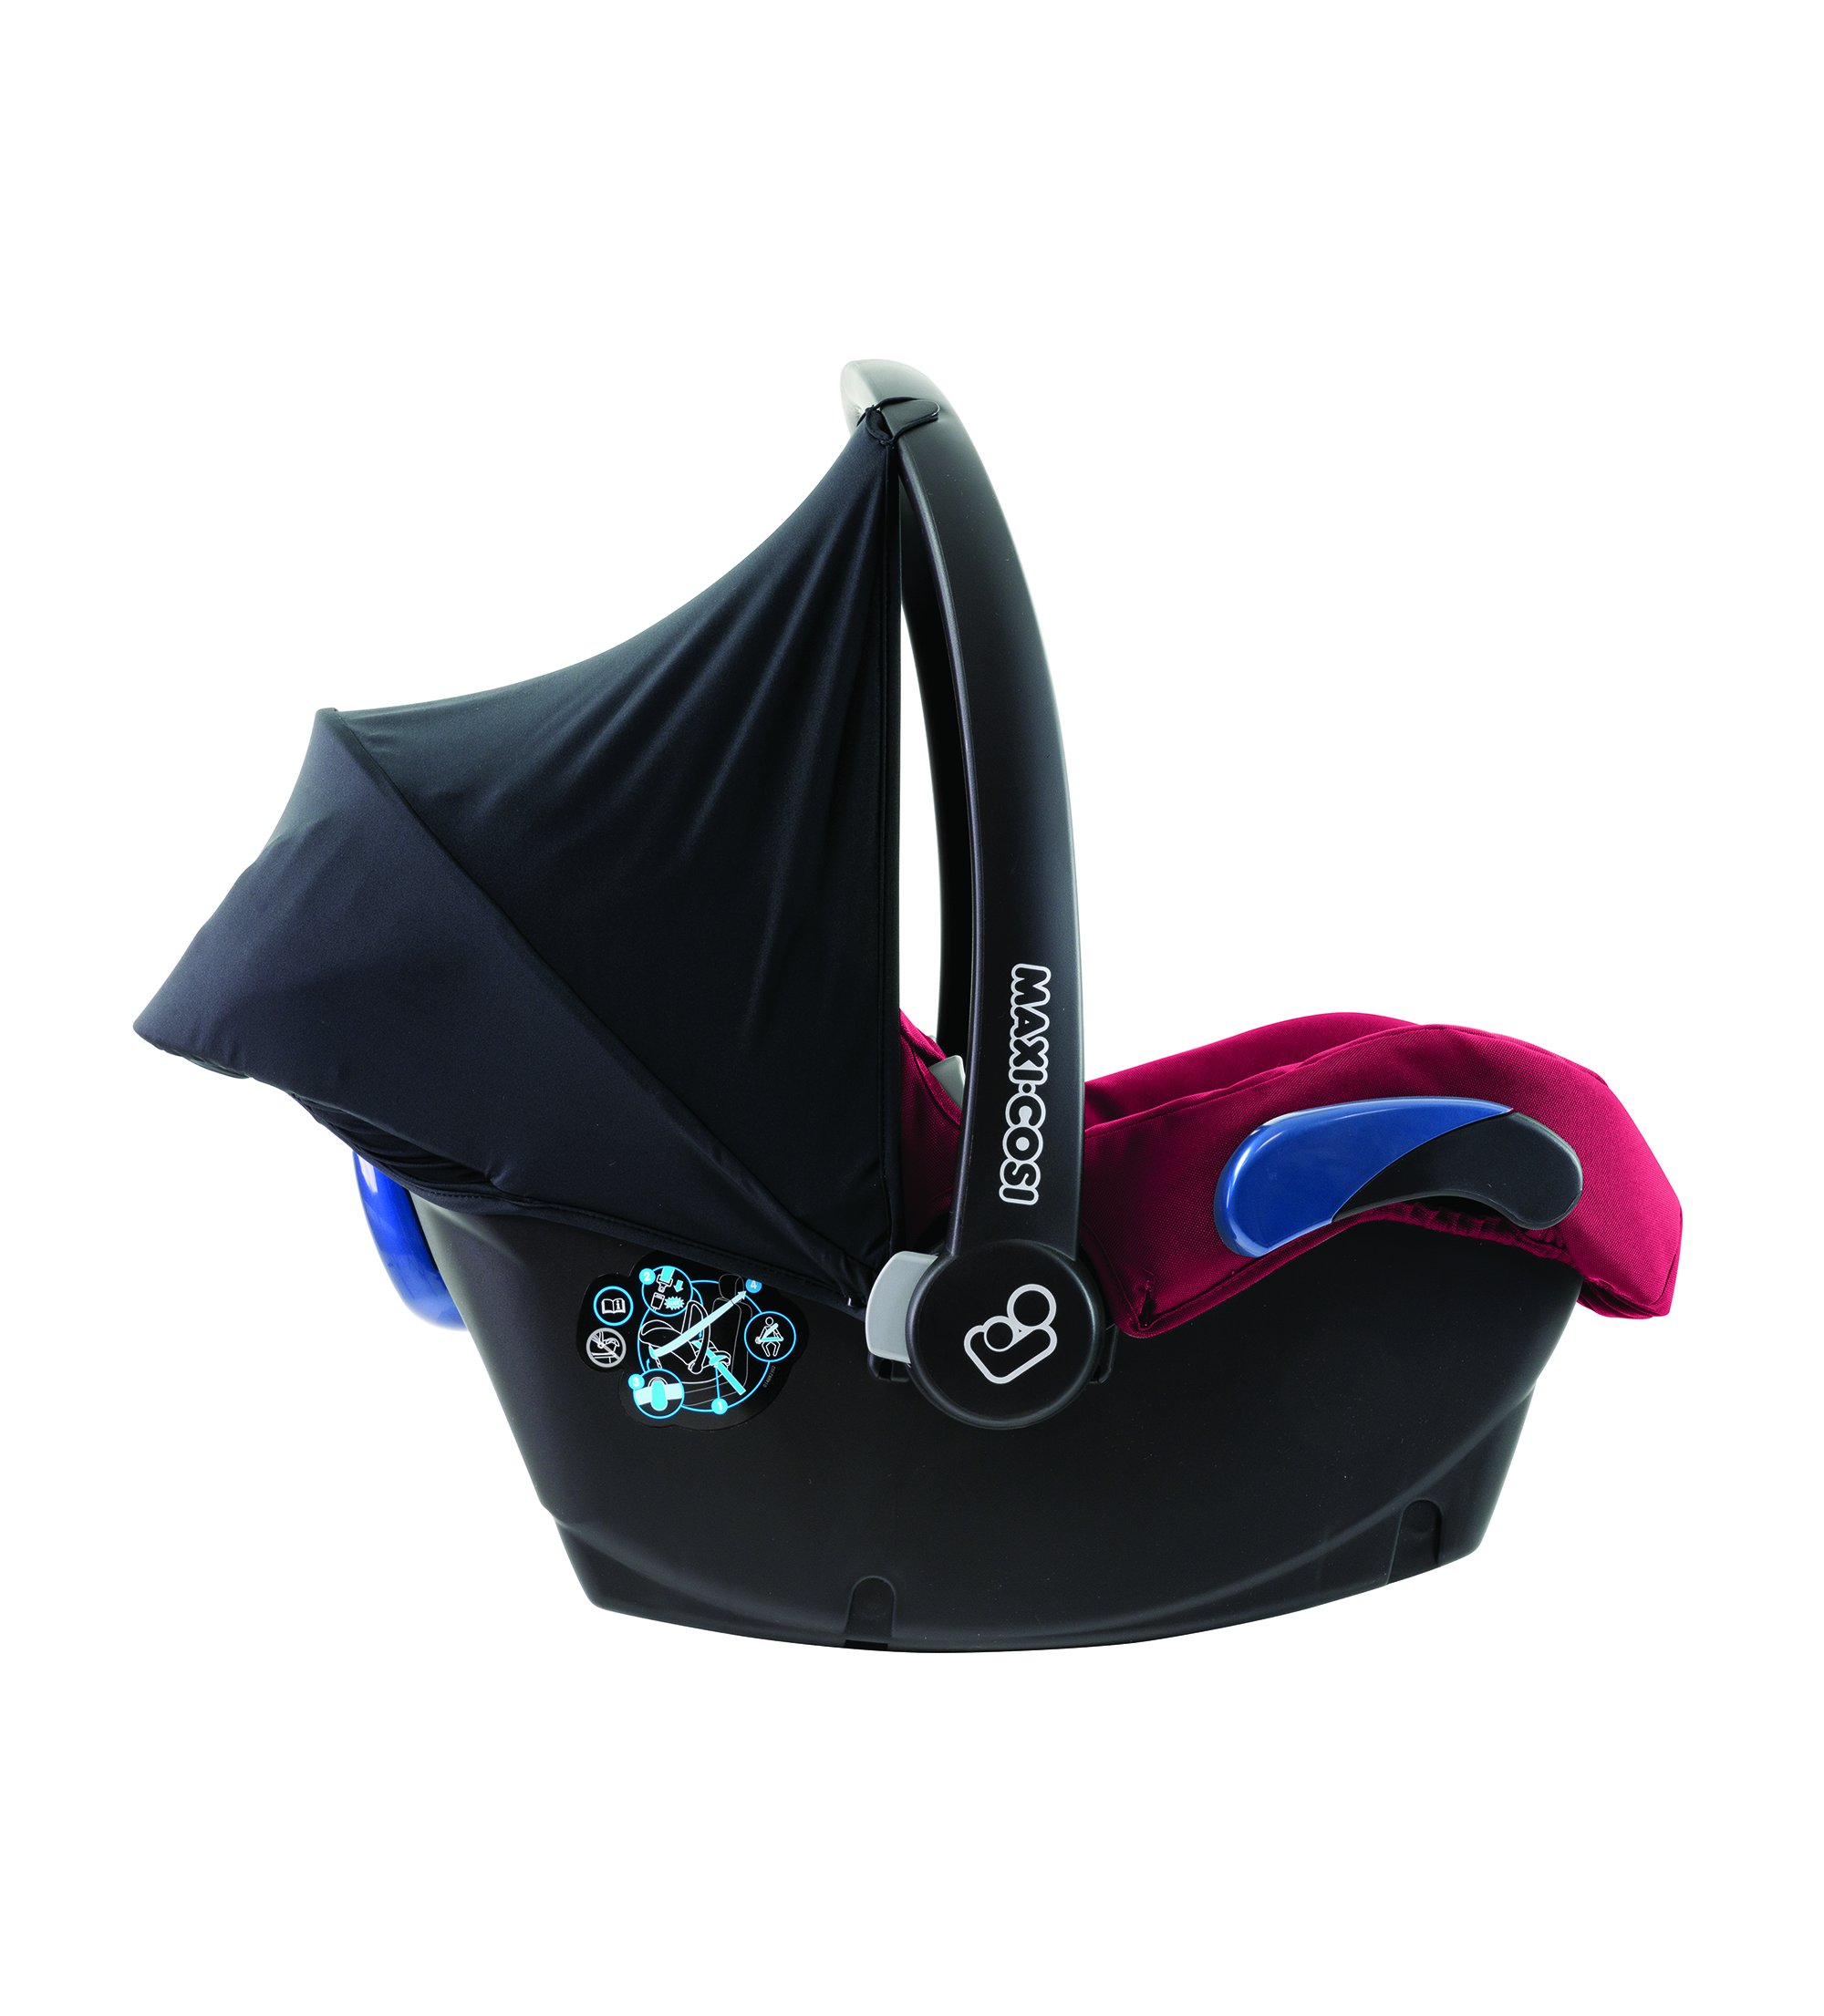 Maxi-Cosi Kinderautositz Citi Robin Red Maxi-Cosi Side protection system, guarantees optimal protection in the event of a side impact Lightweight, light weight and ergonomically shaped safety bar for use as carrying handle Practical travel system 10